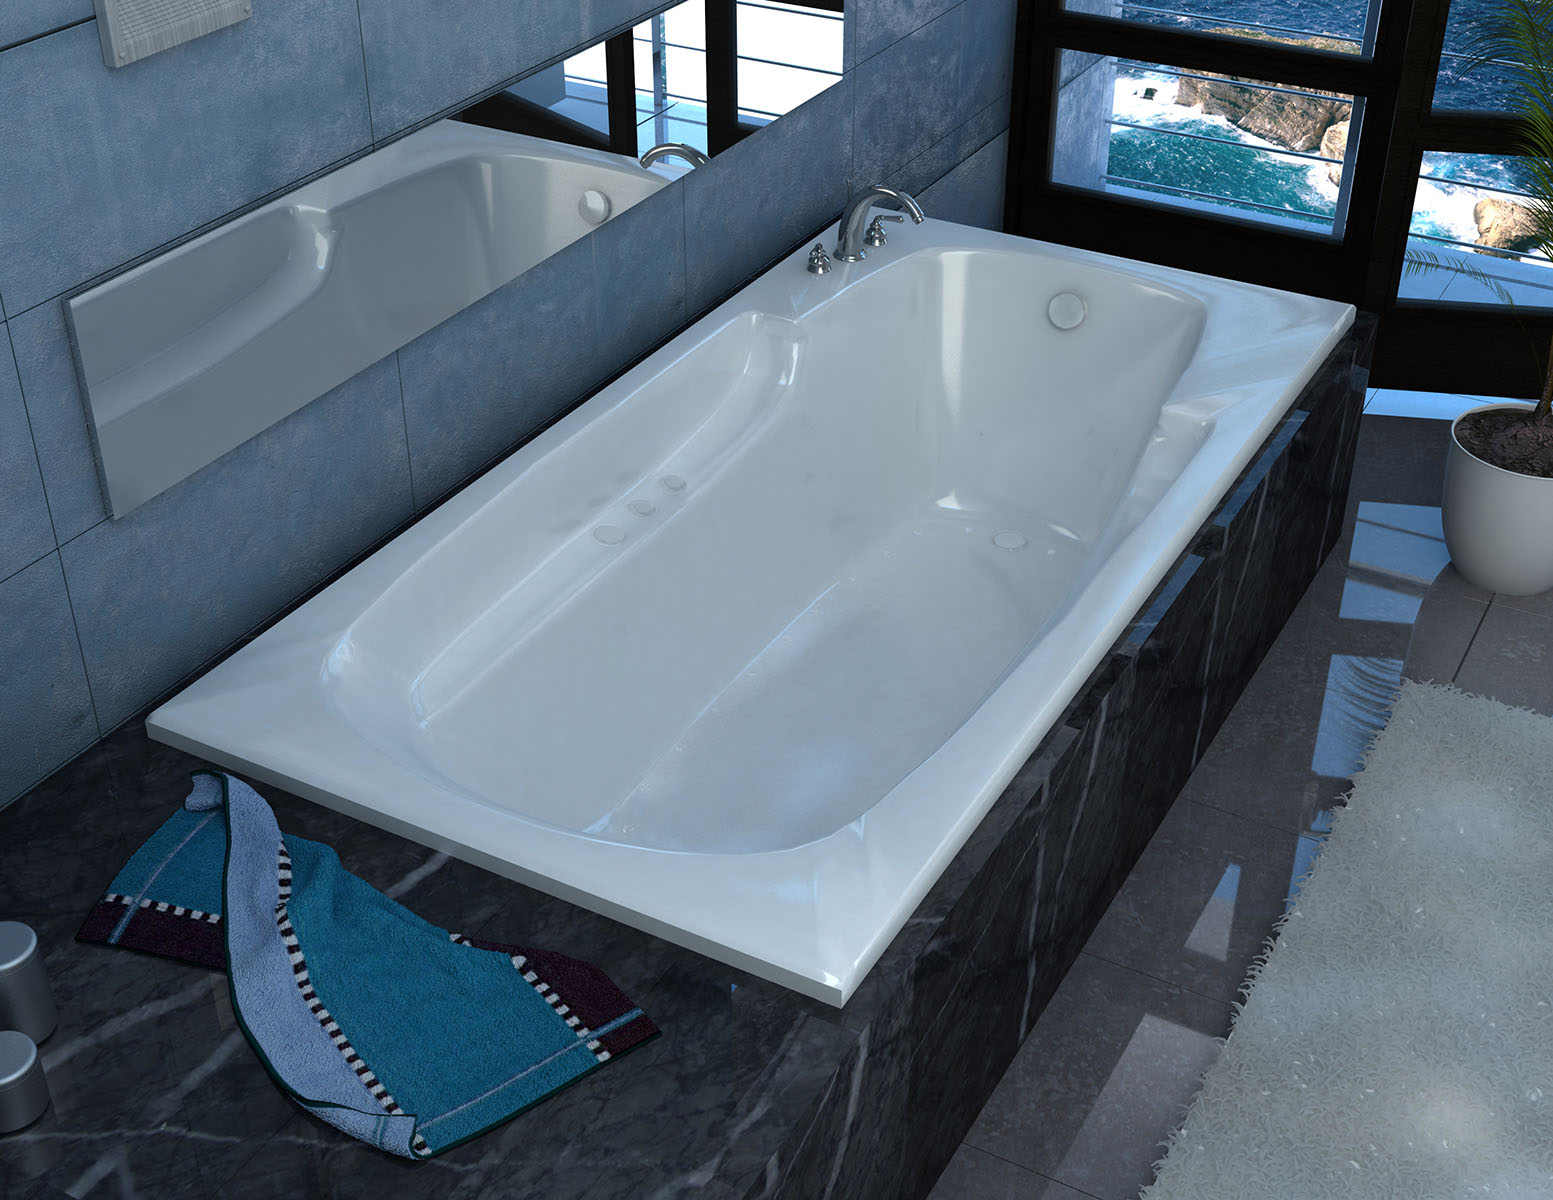 Aesis 36 x 72 Rectangular Air Jetted Bathtub